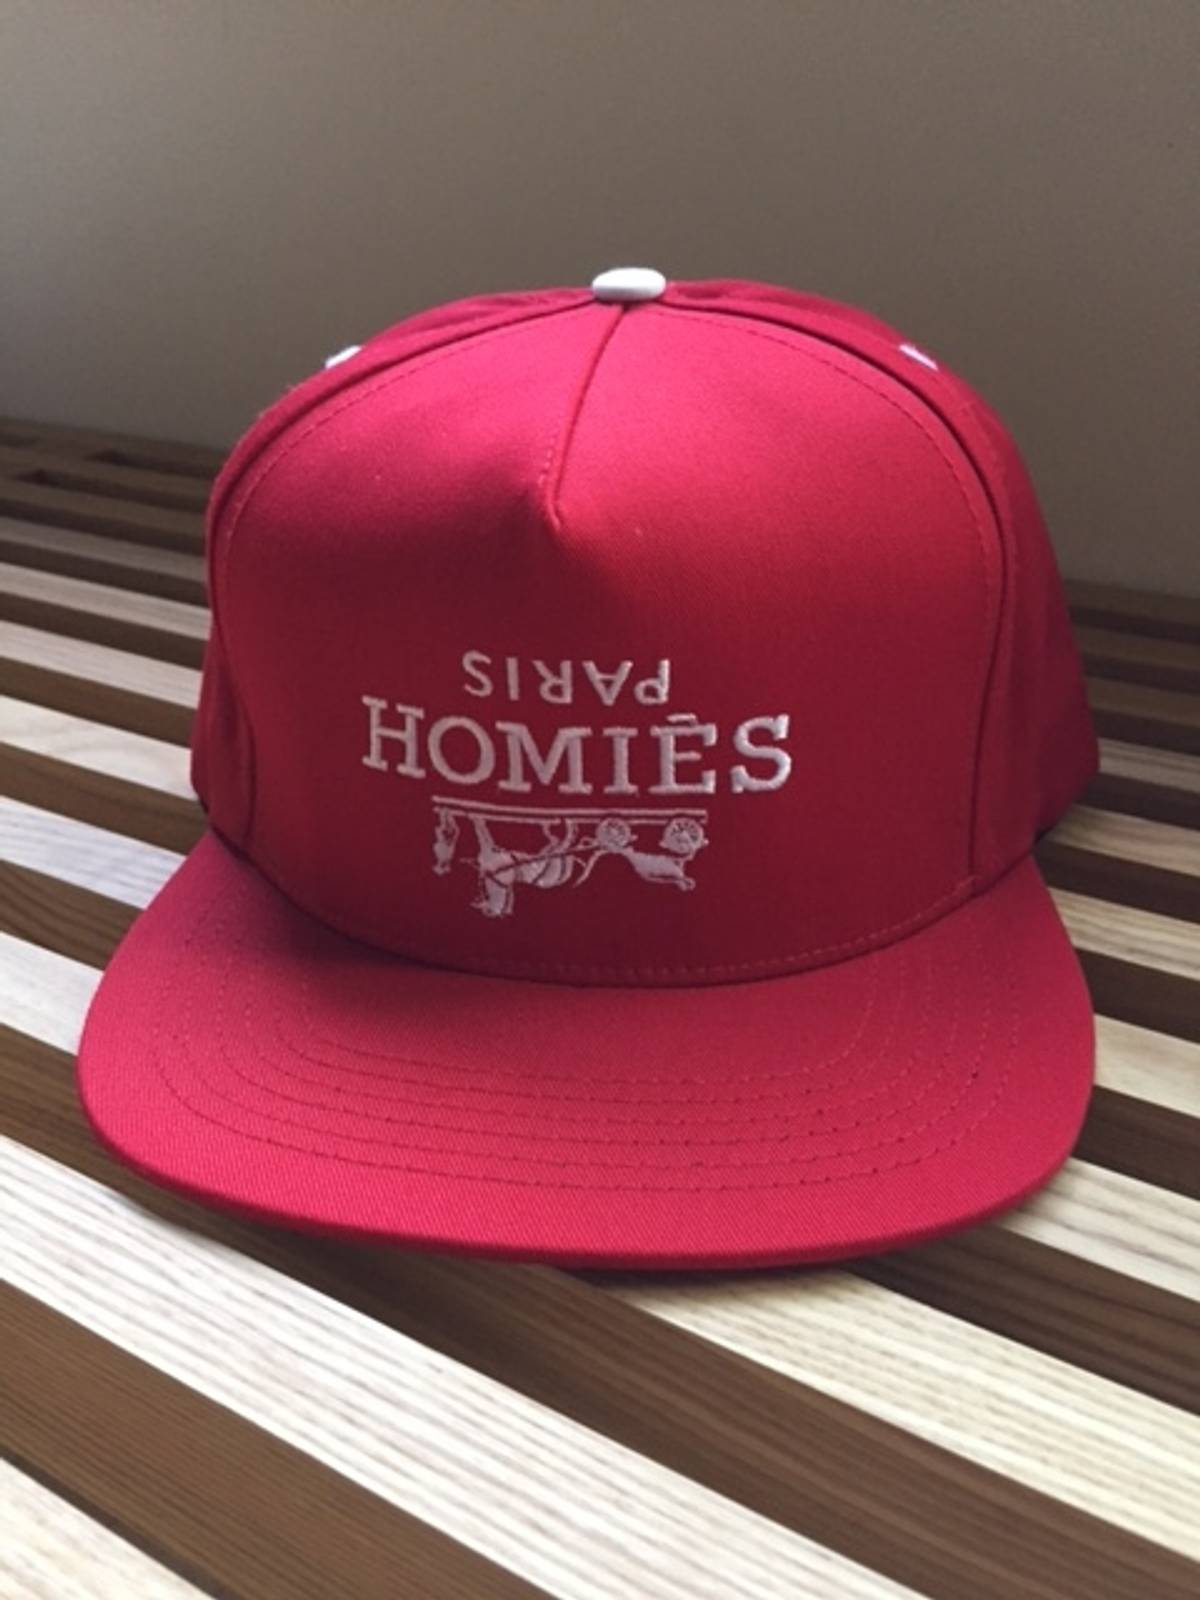 For The Homies  Homies  Hermes Paris Snapback Size one size - Hats ... 359879fb657